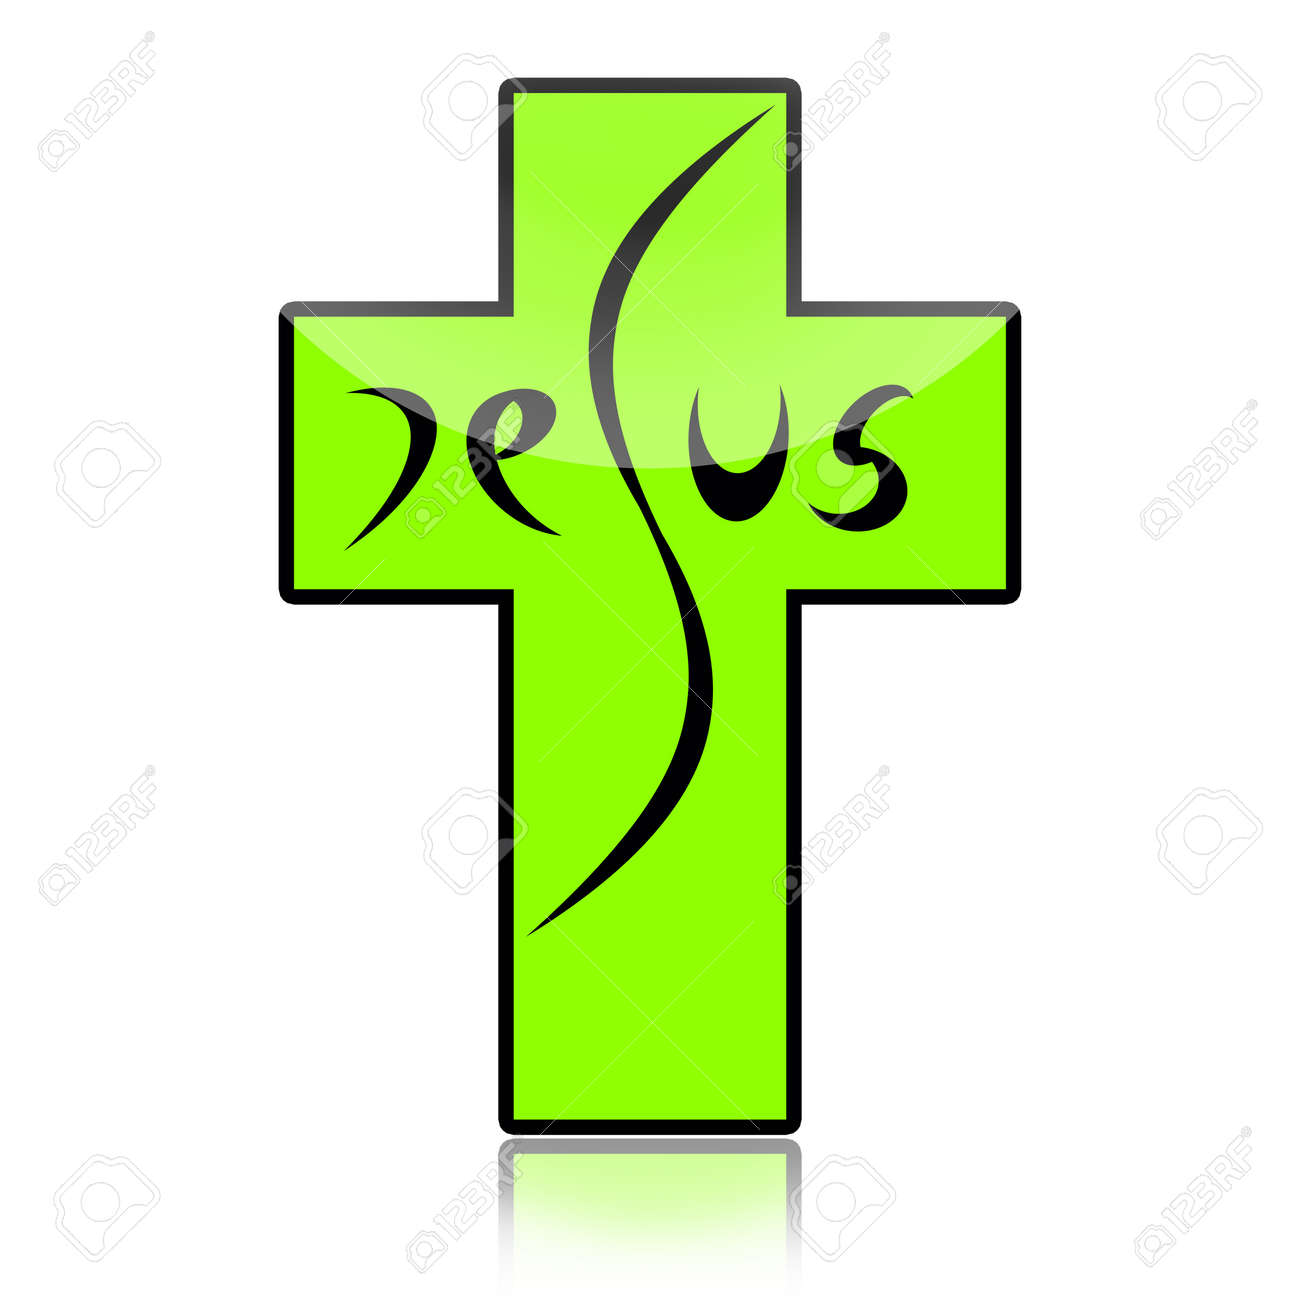 Jesus On The Cross Isolated On White Background Stock Photo, Picture ...